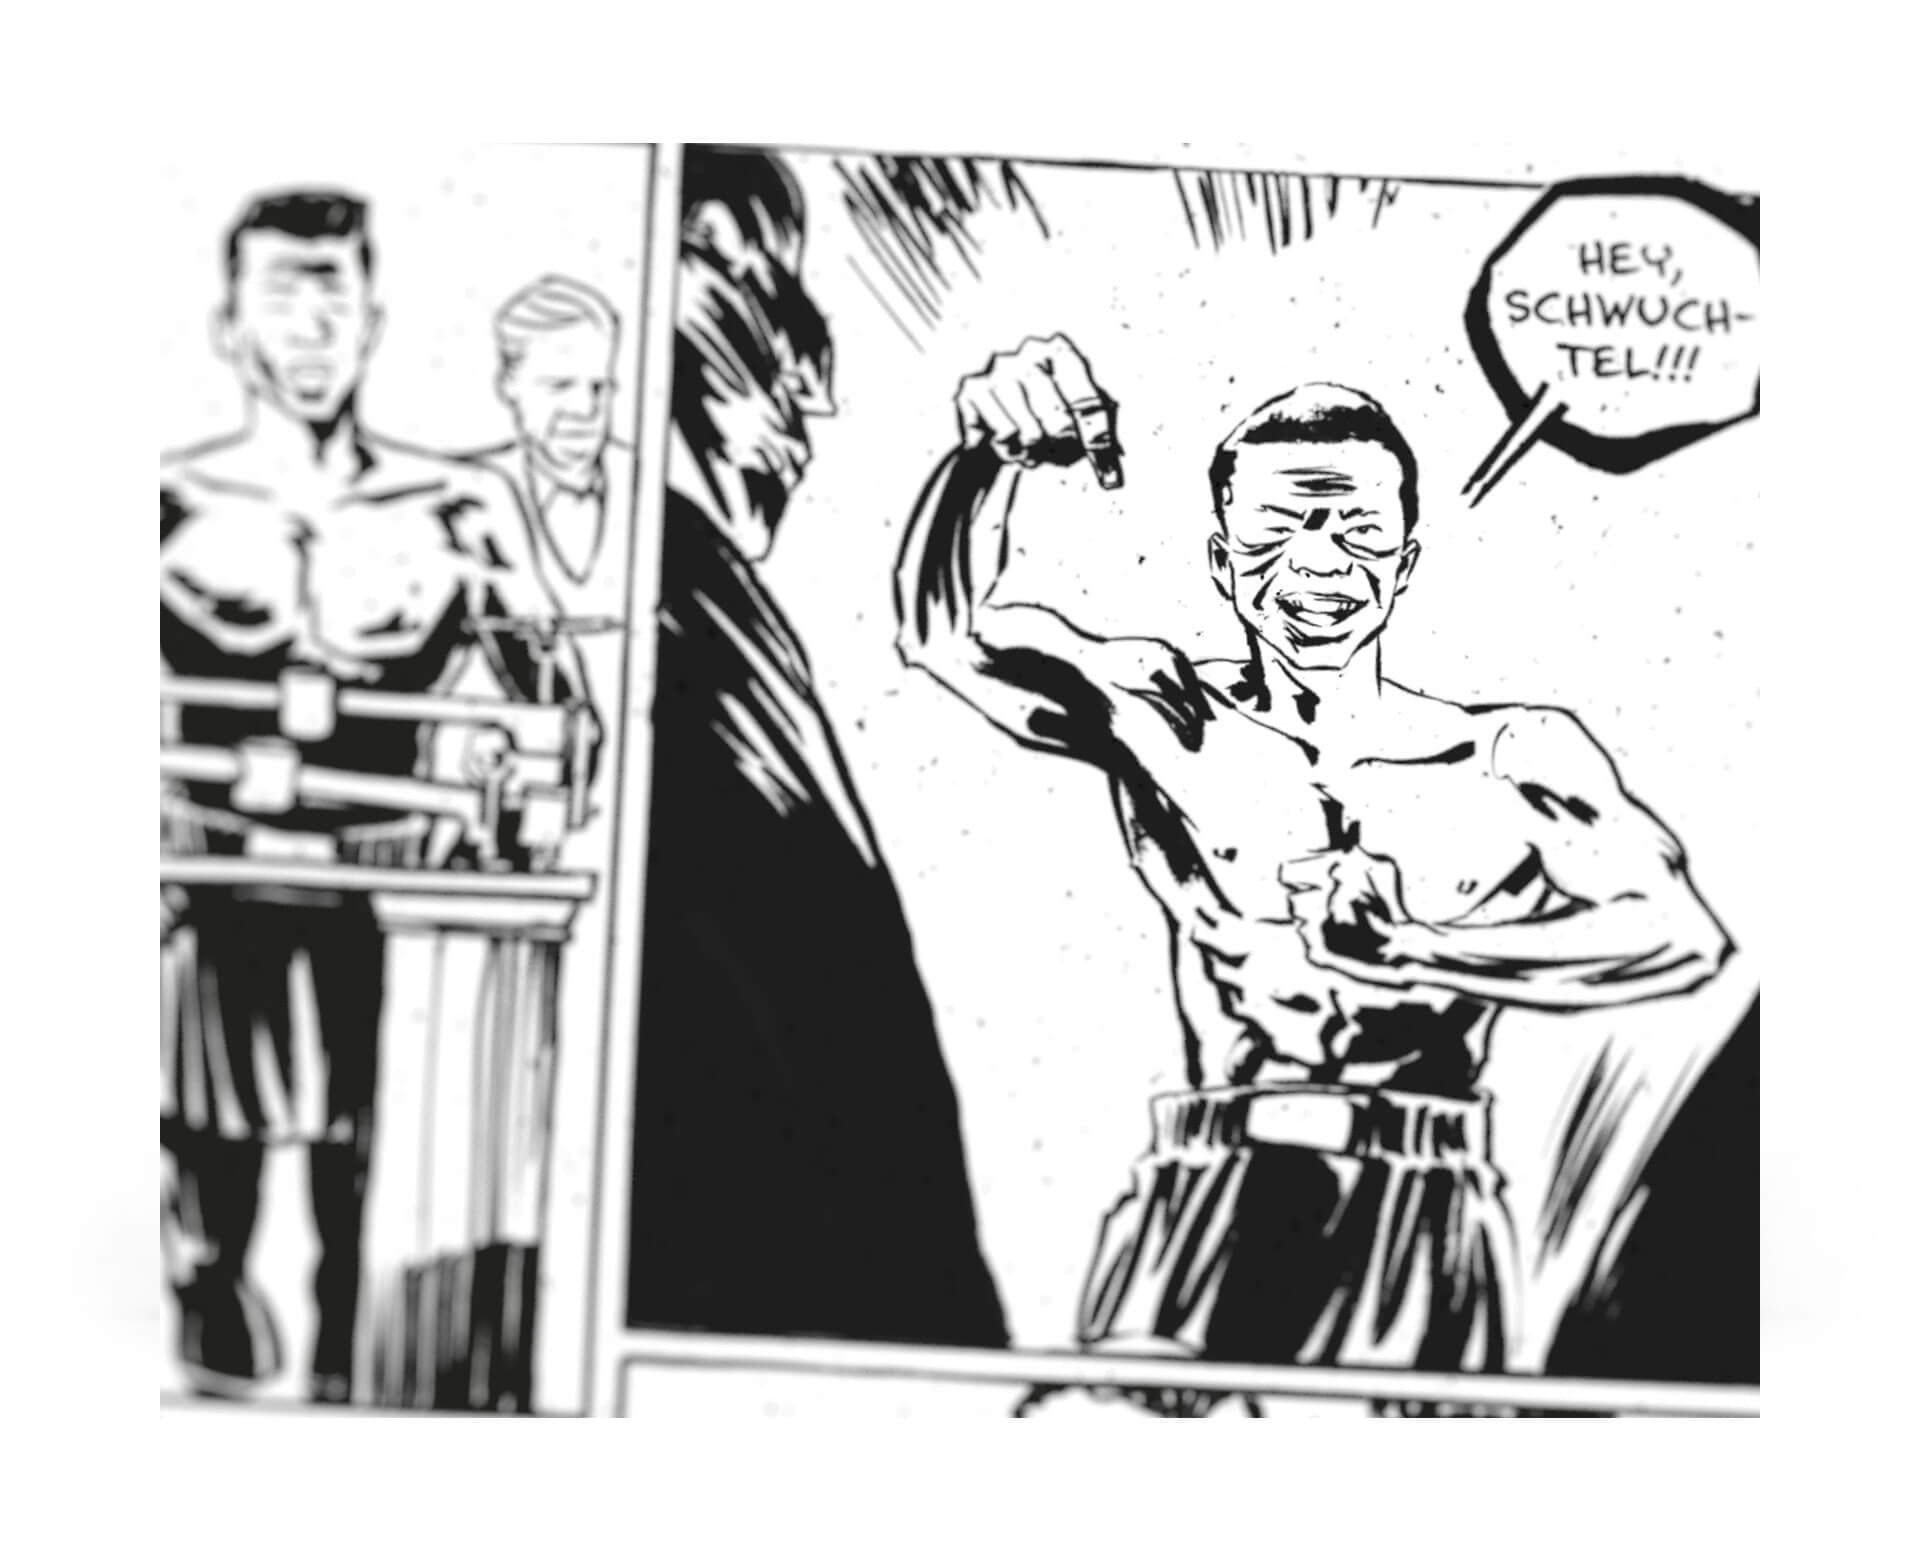 Illustration Comic Benny Paret Beleidigt Emile Griffith mit den Worten